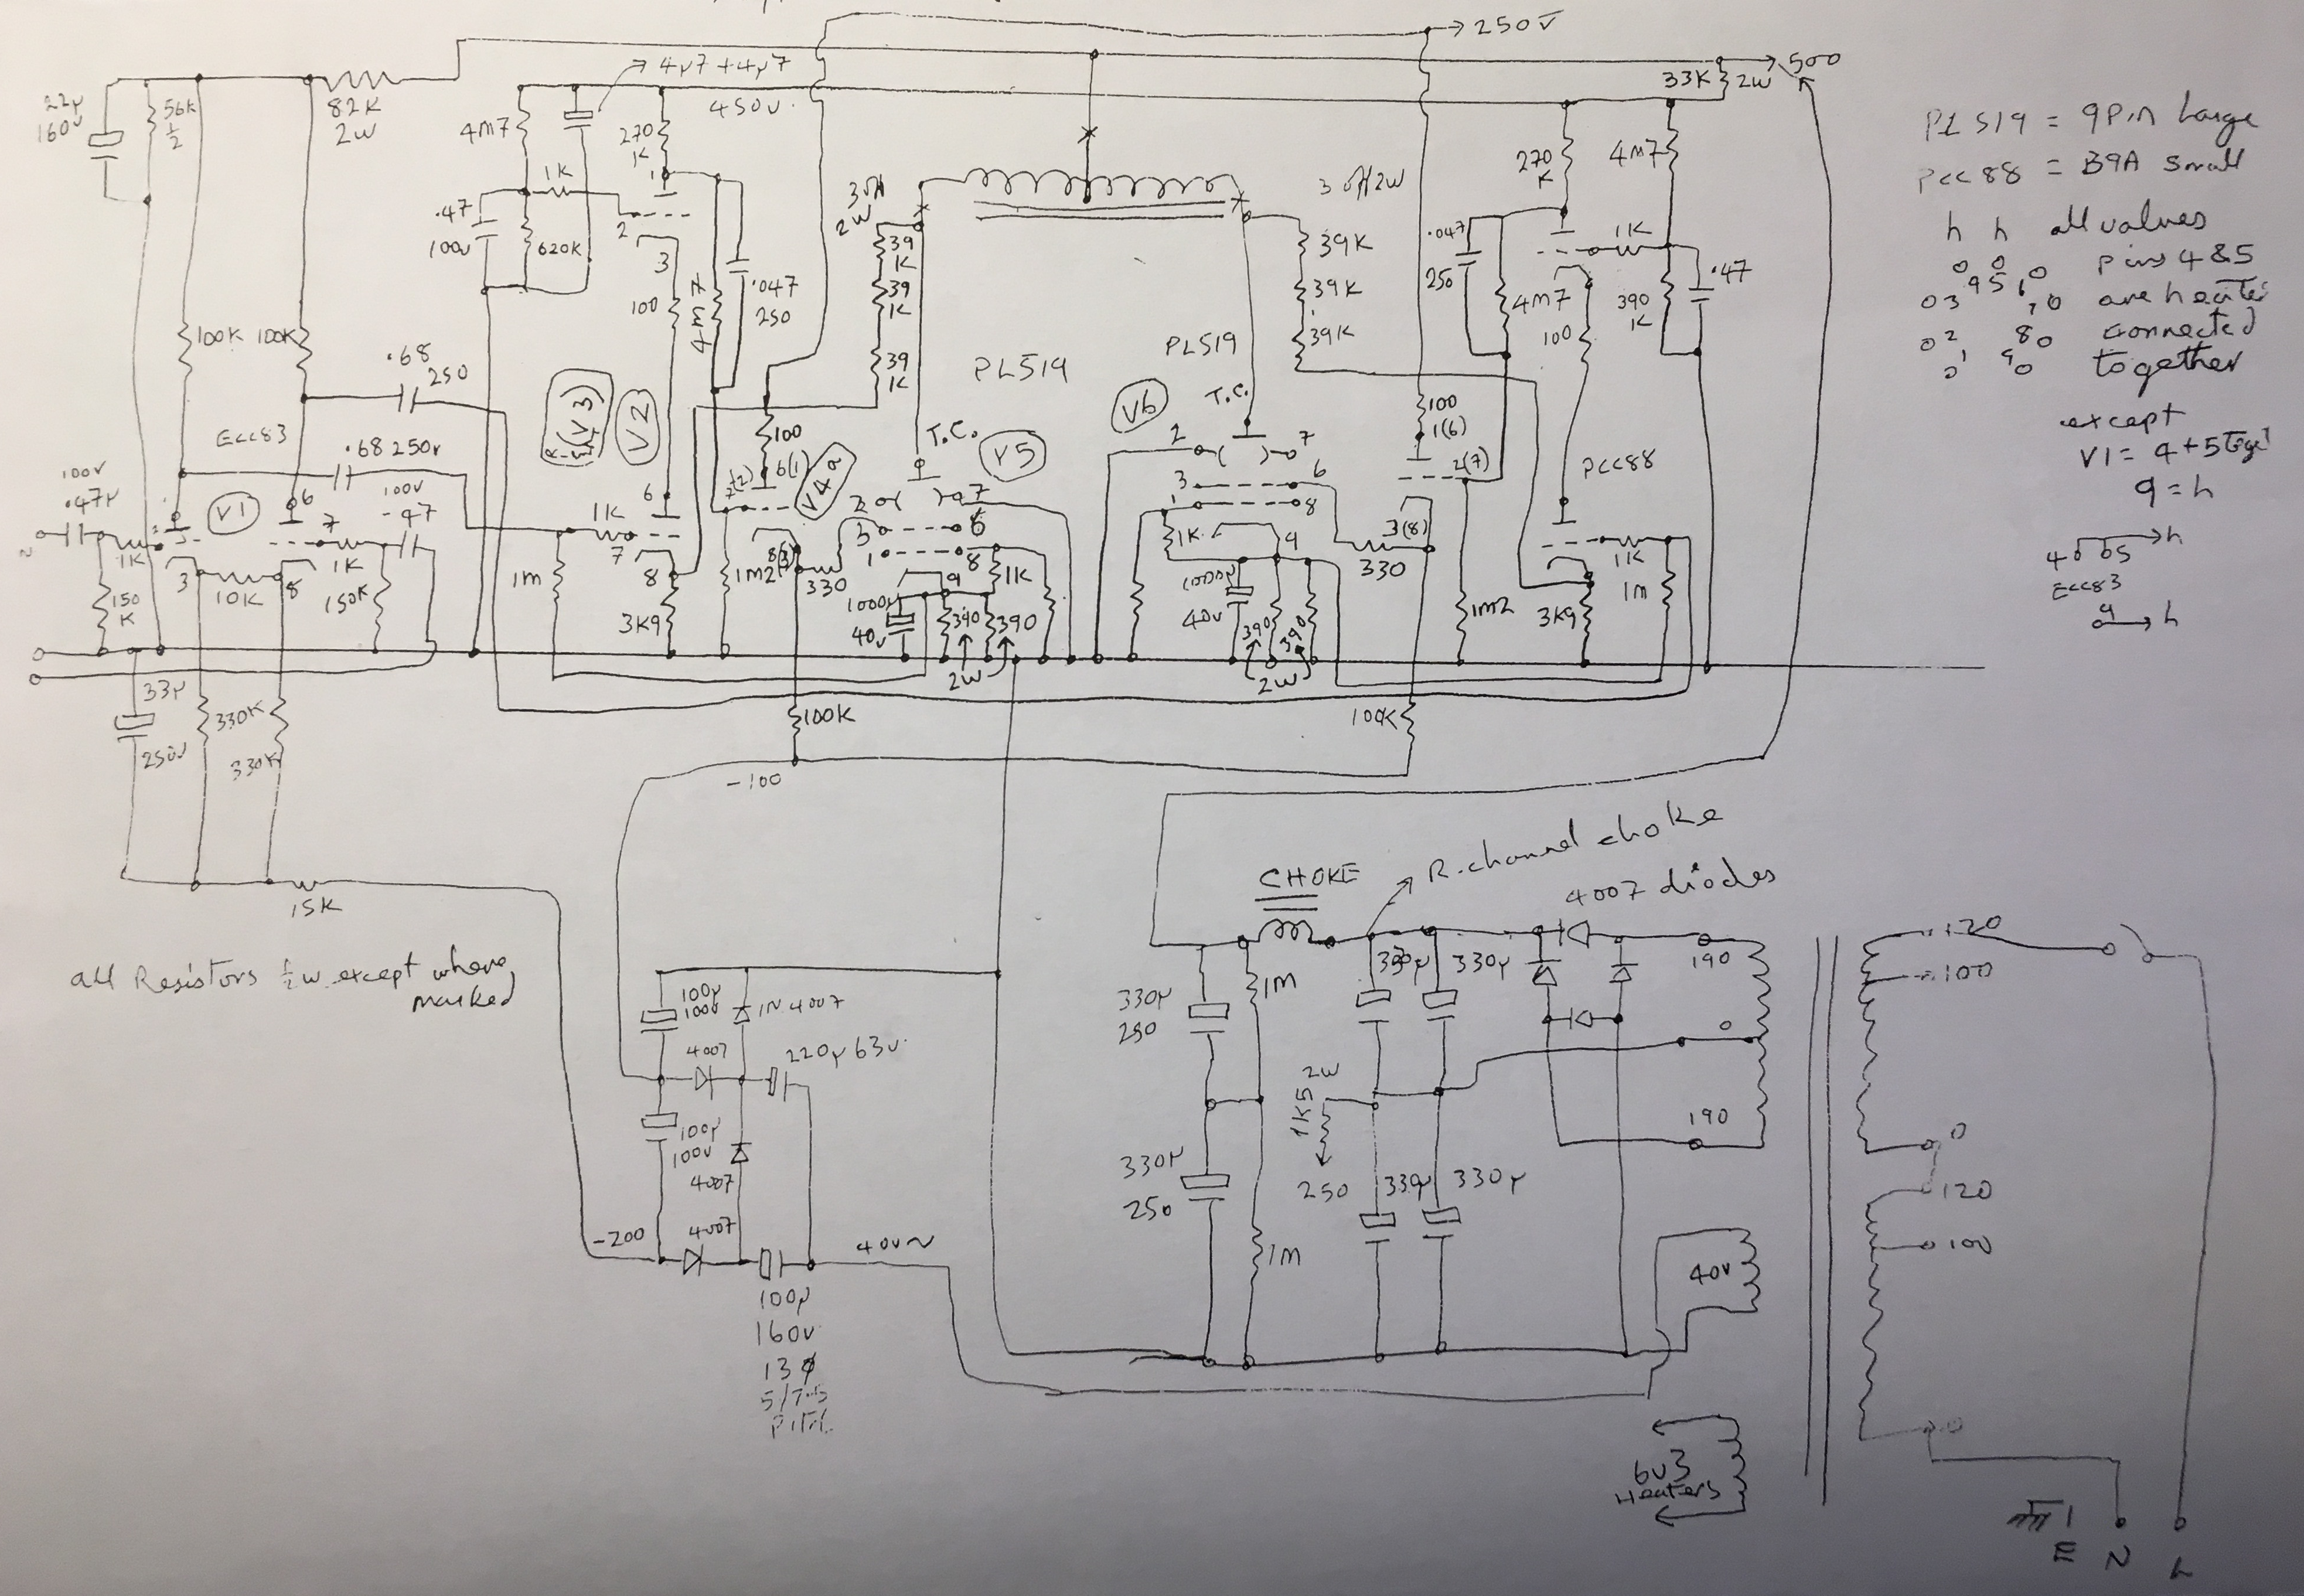 Ear 861 Schematic Below Shows A Typical Pushpull Amplifier Built With One Schematics As Found In Manual Mentioned Above The Input Capacitors 047uf 100v Were By Passed Actually They Are 1 Uf